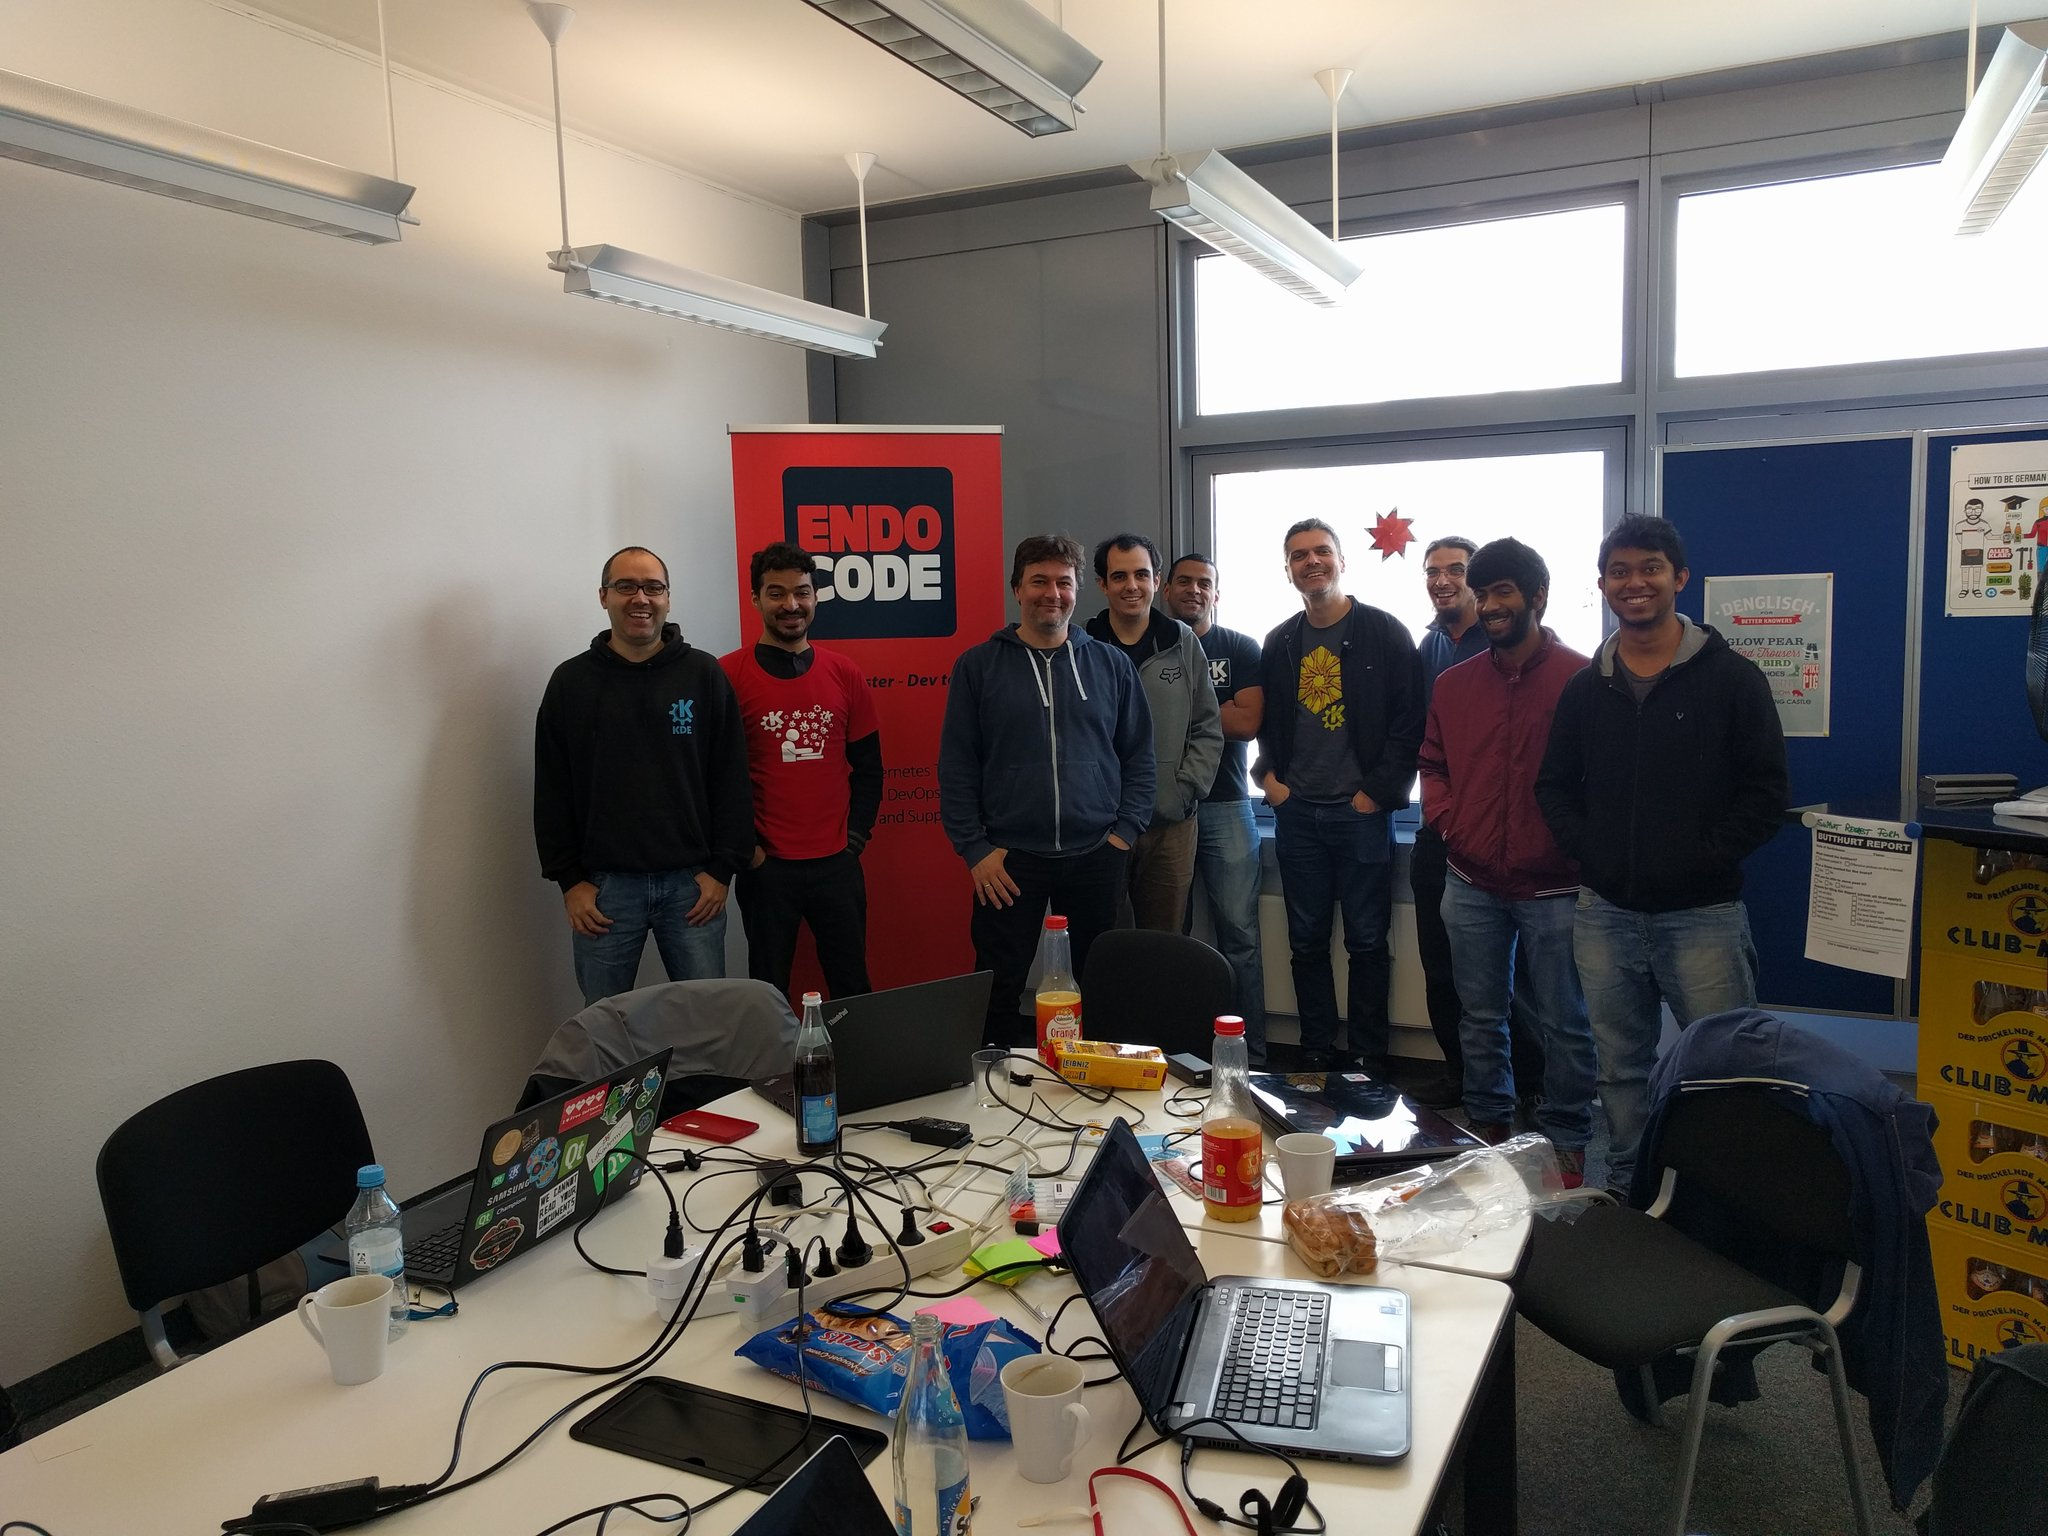 The hackers at KDE Edu Sprint 2017